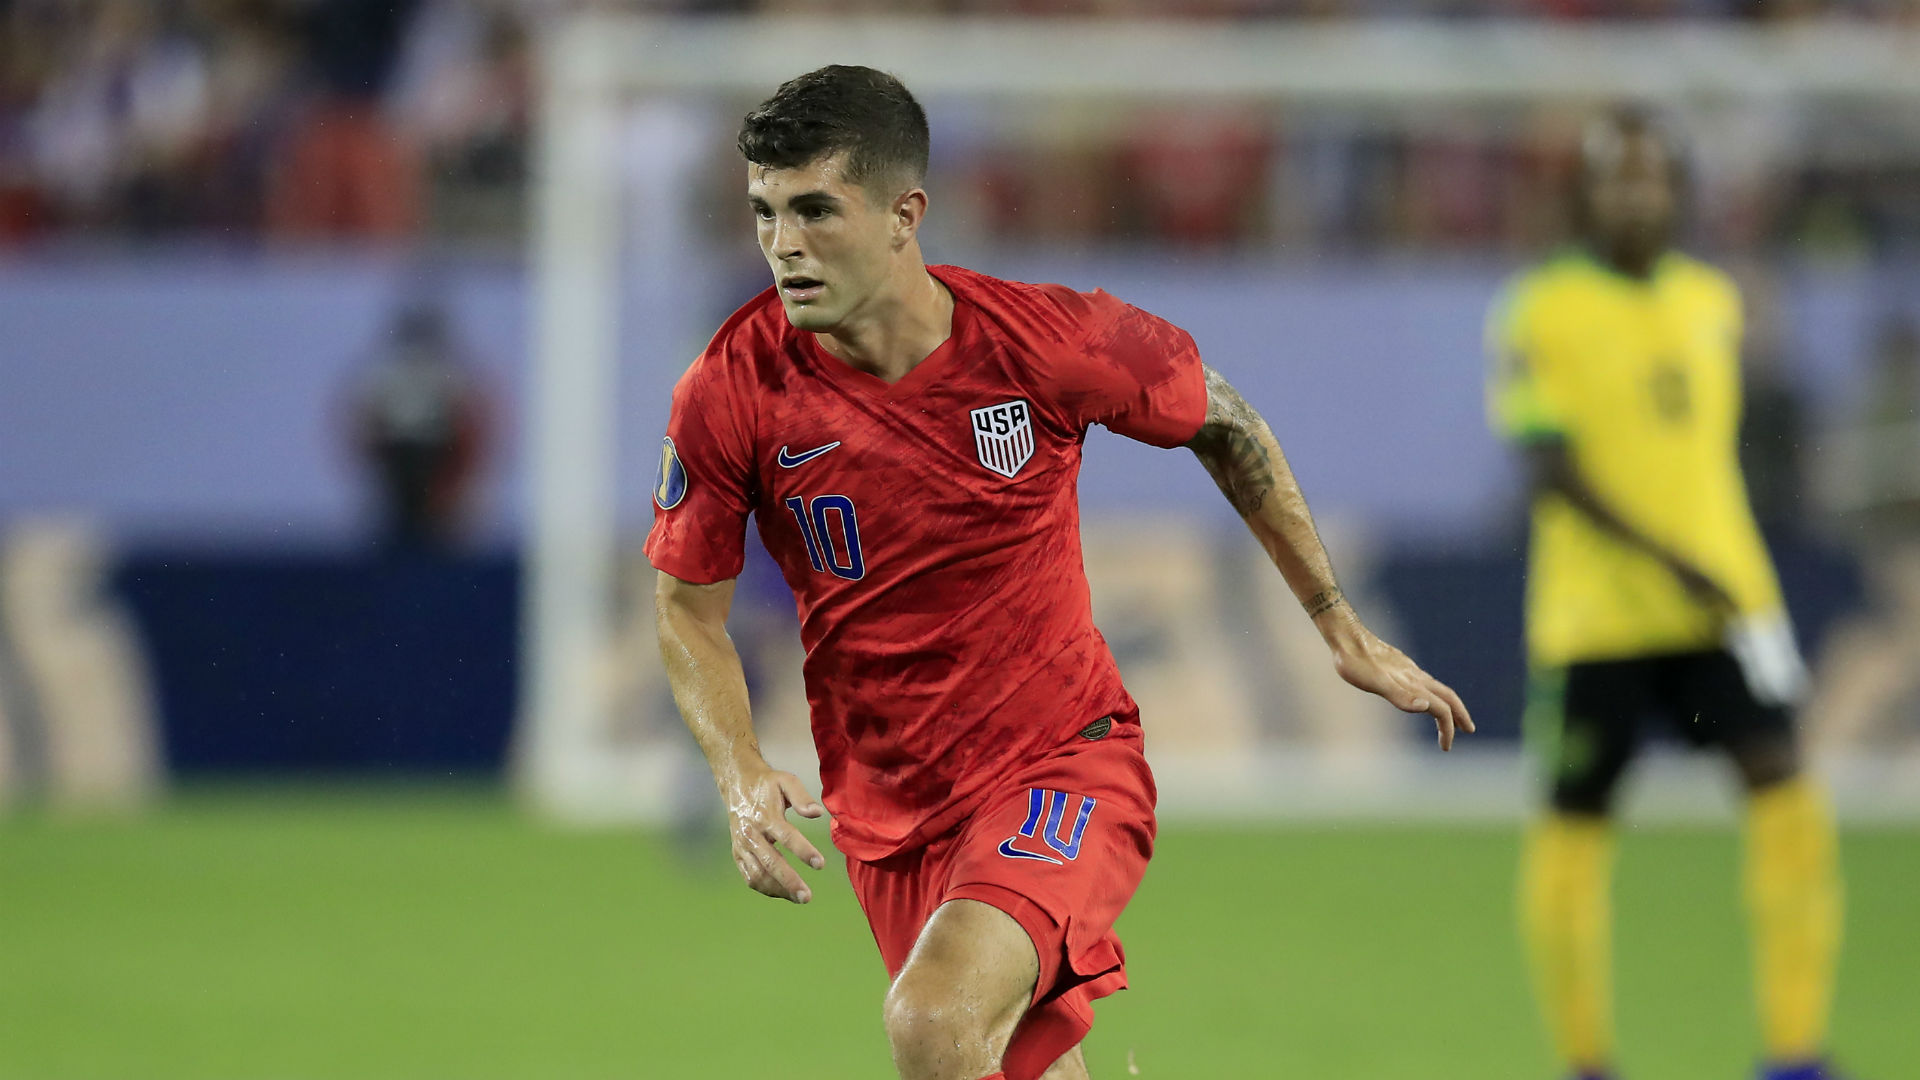 Christian Pulisic USA USMNT Gold Cup 2019